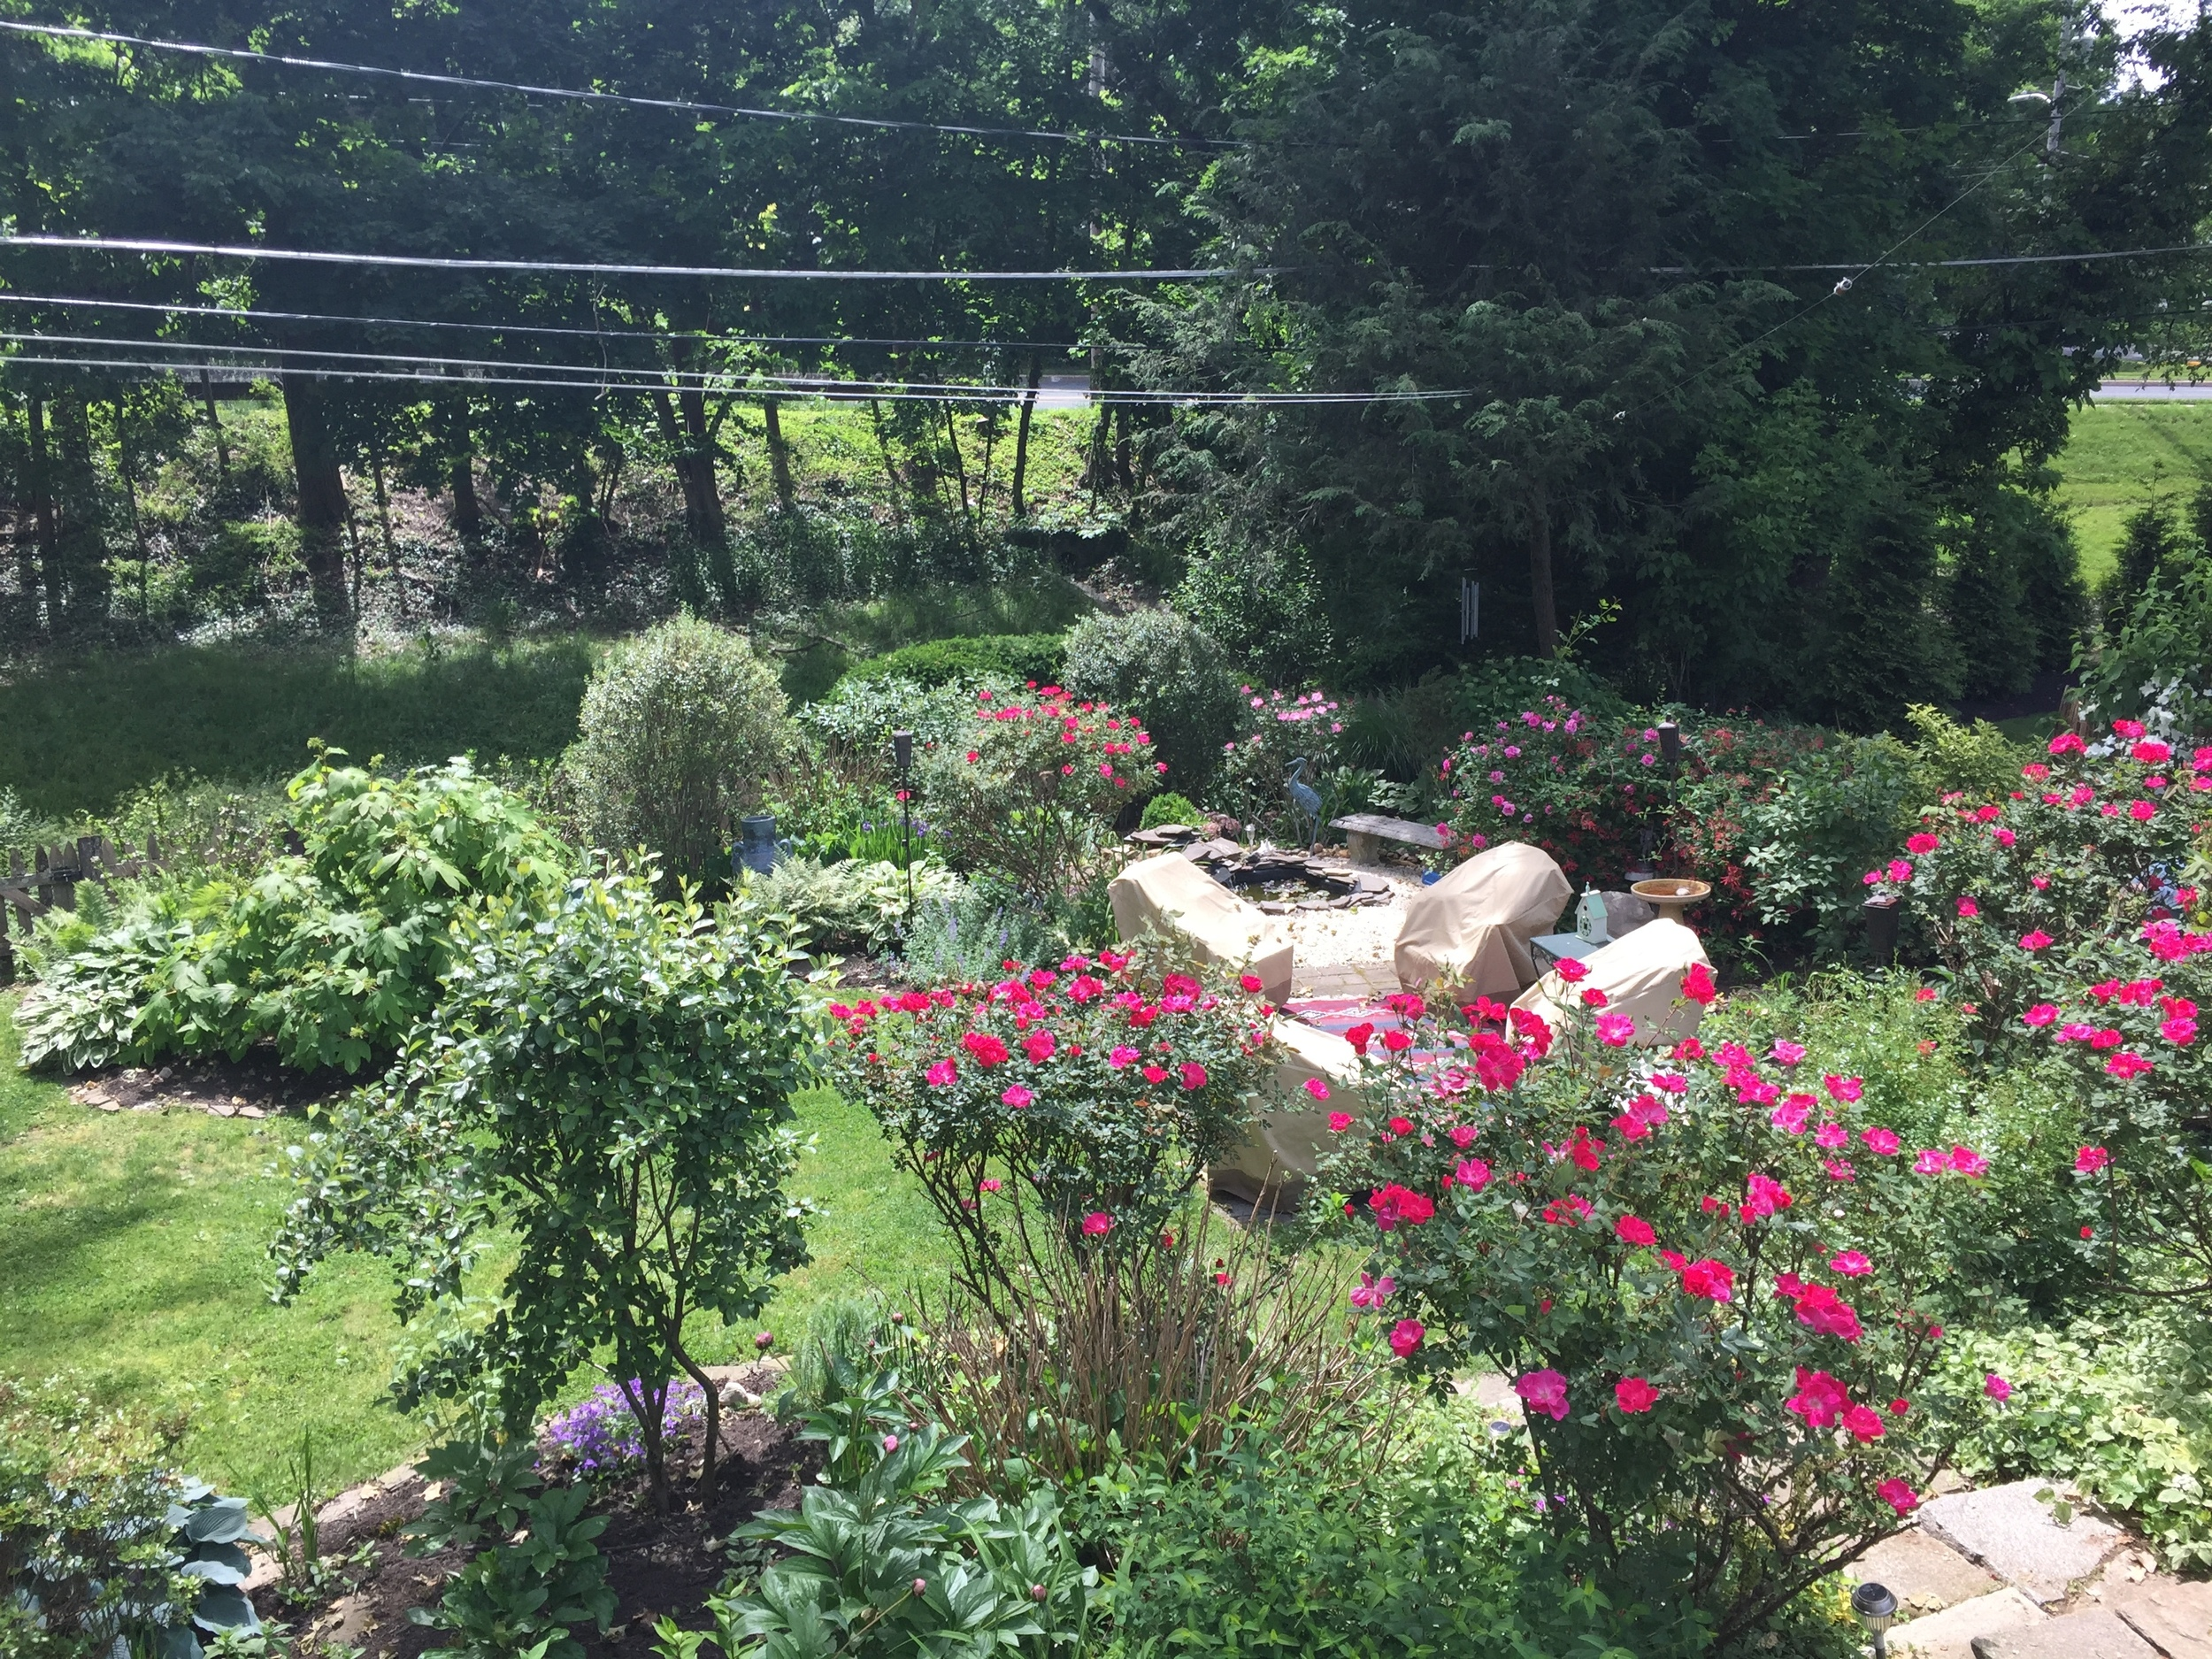 Standing on the deck overlooking part of the back yard, patio and pond. Rose bushes are just beginning to explode in color and scent.